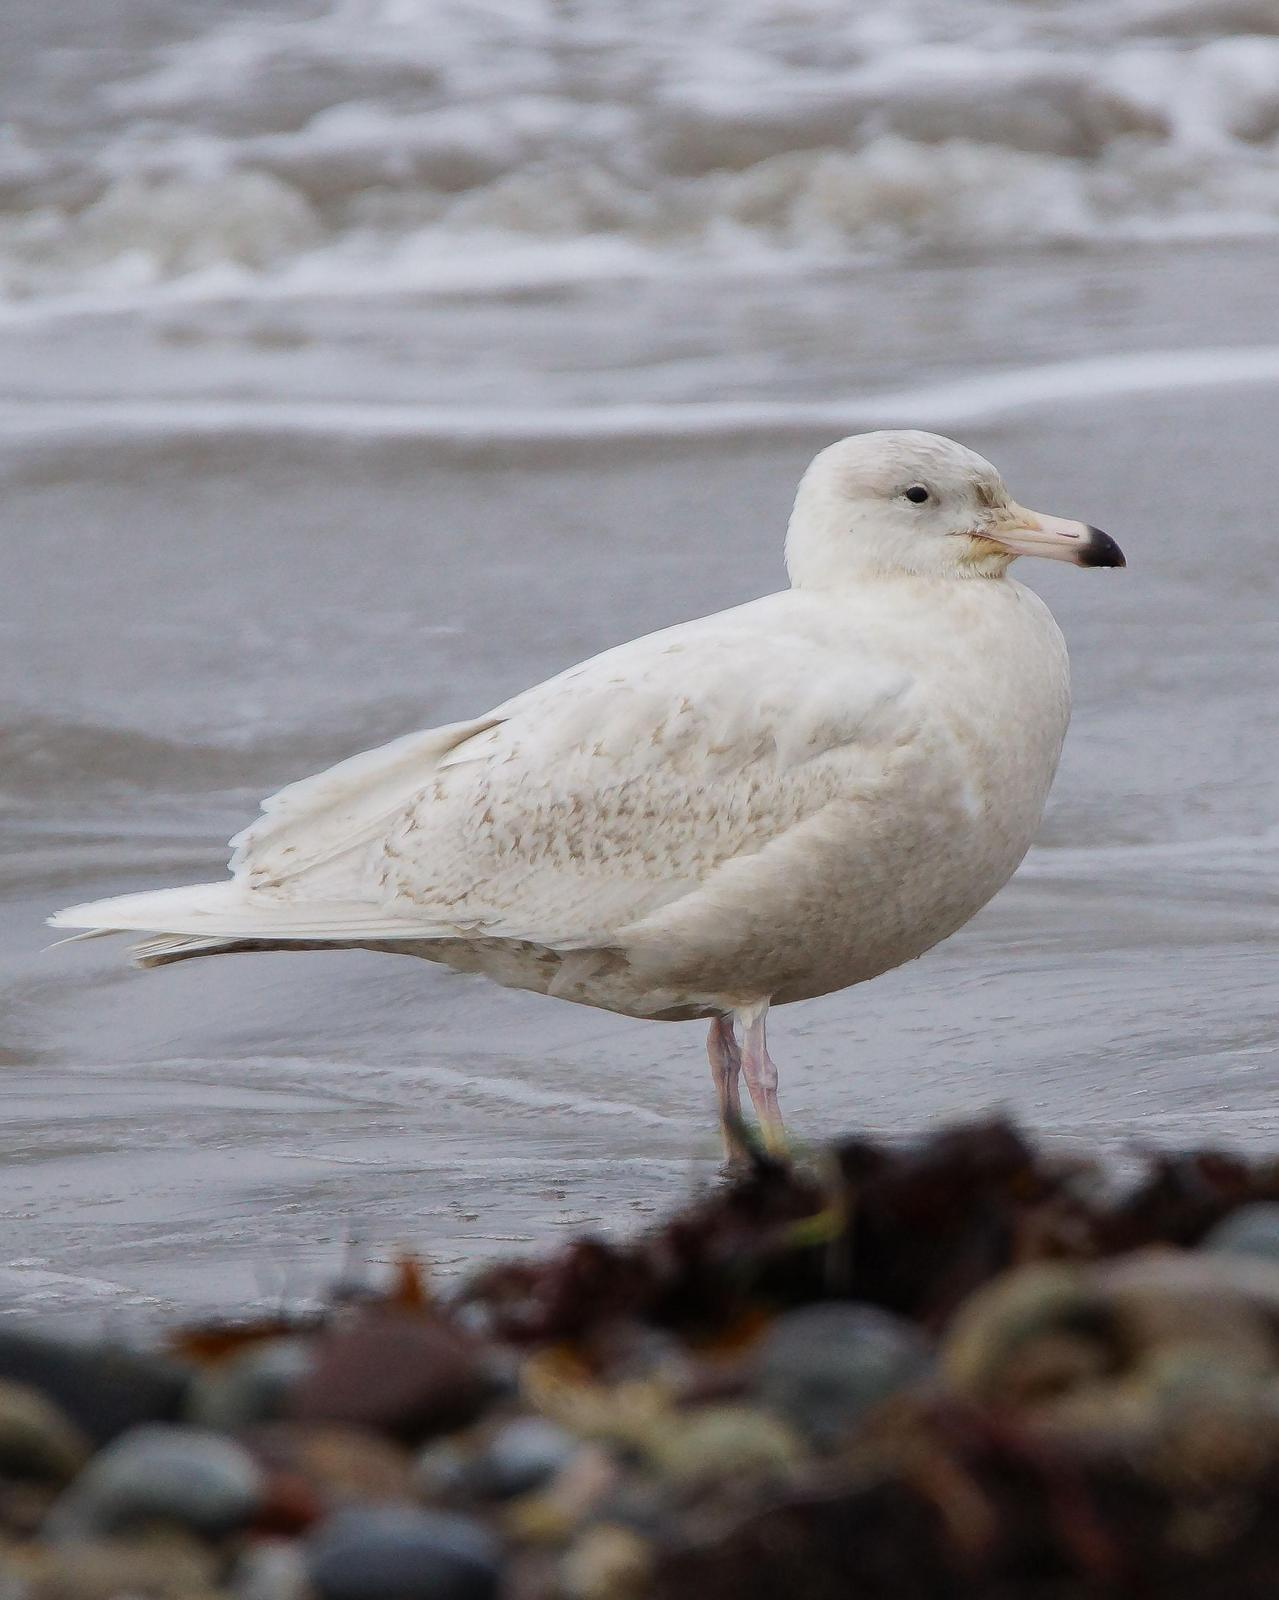 Glaucous Gull Photo by Steve Percival